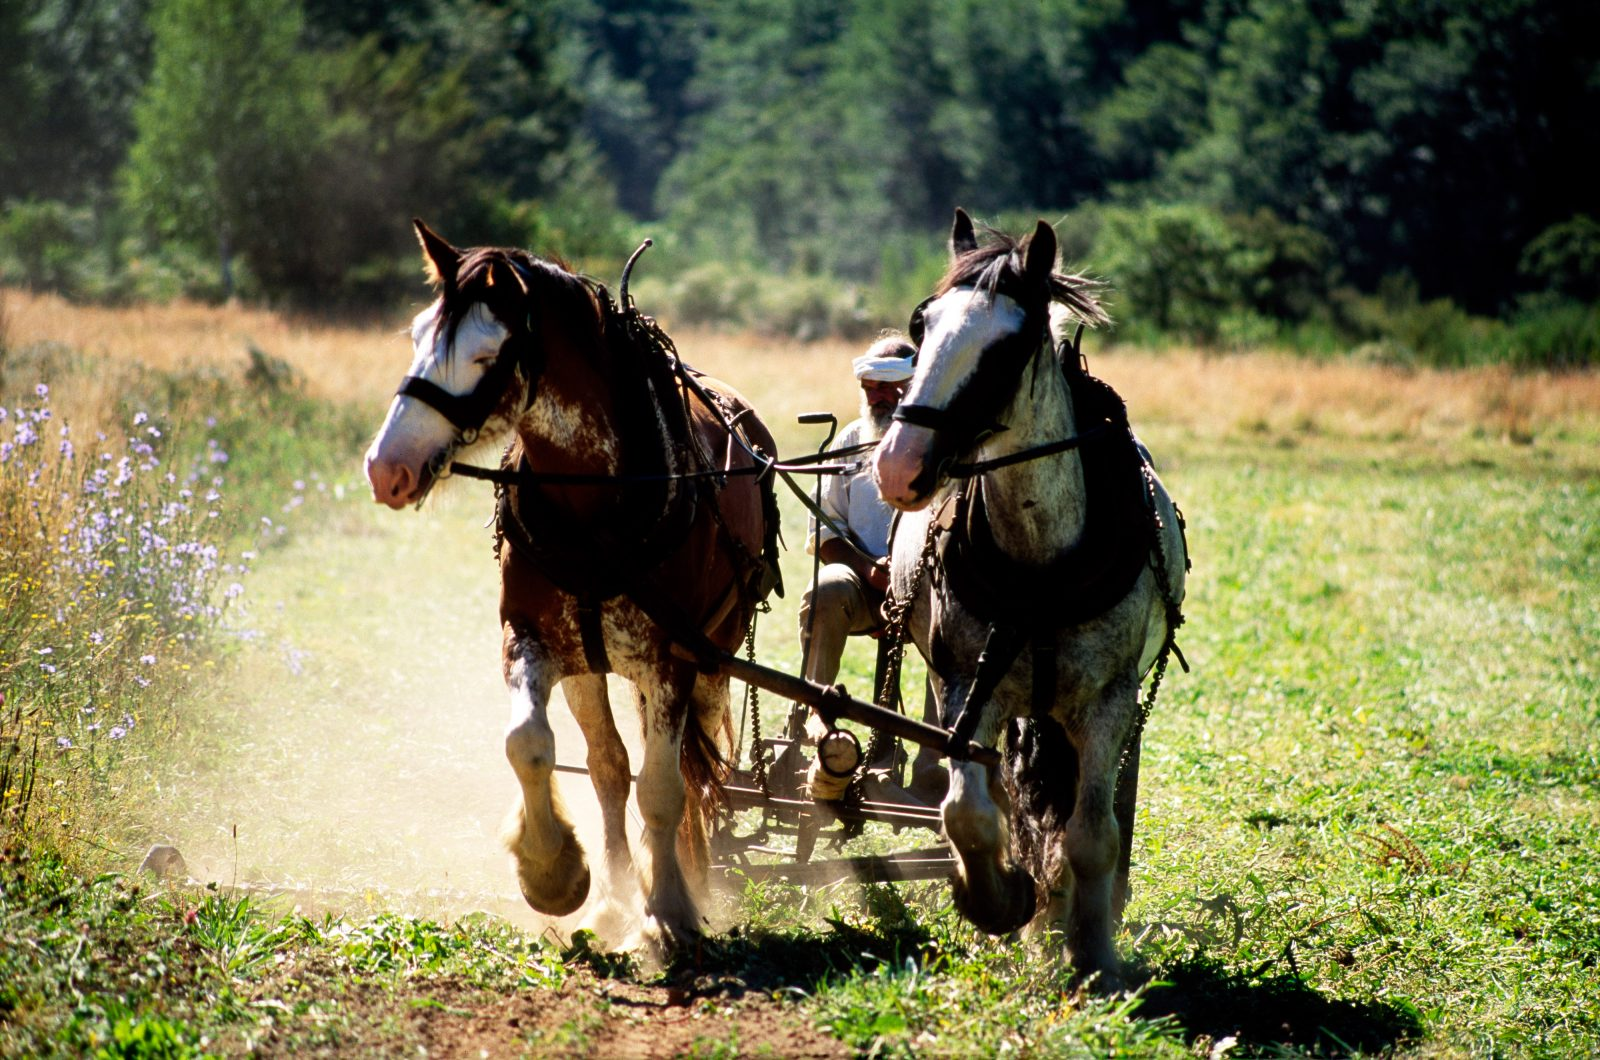 "Organic farmer Stephen McGrath favours the grass-fed variety of horsepower, whether it is for drawing a sickle-bar mower to top the buckwheat or hauling his wagons about the district. ""The faster you go, the less time you're got,"" says . McGrath—a sentiment that would find some resonance among the numerous lifestylers drawn to the remote district by its unhurried ways,"